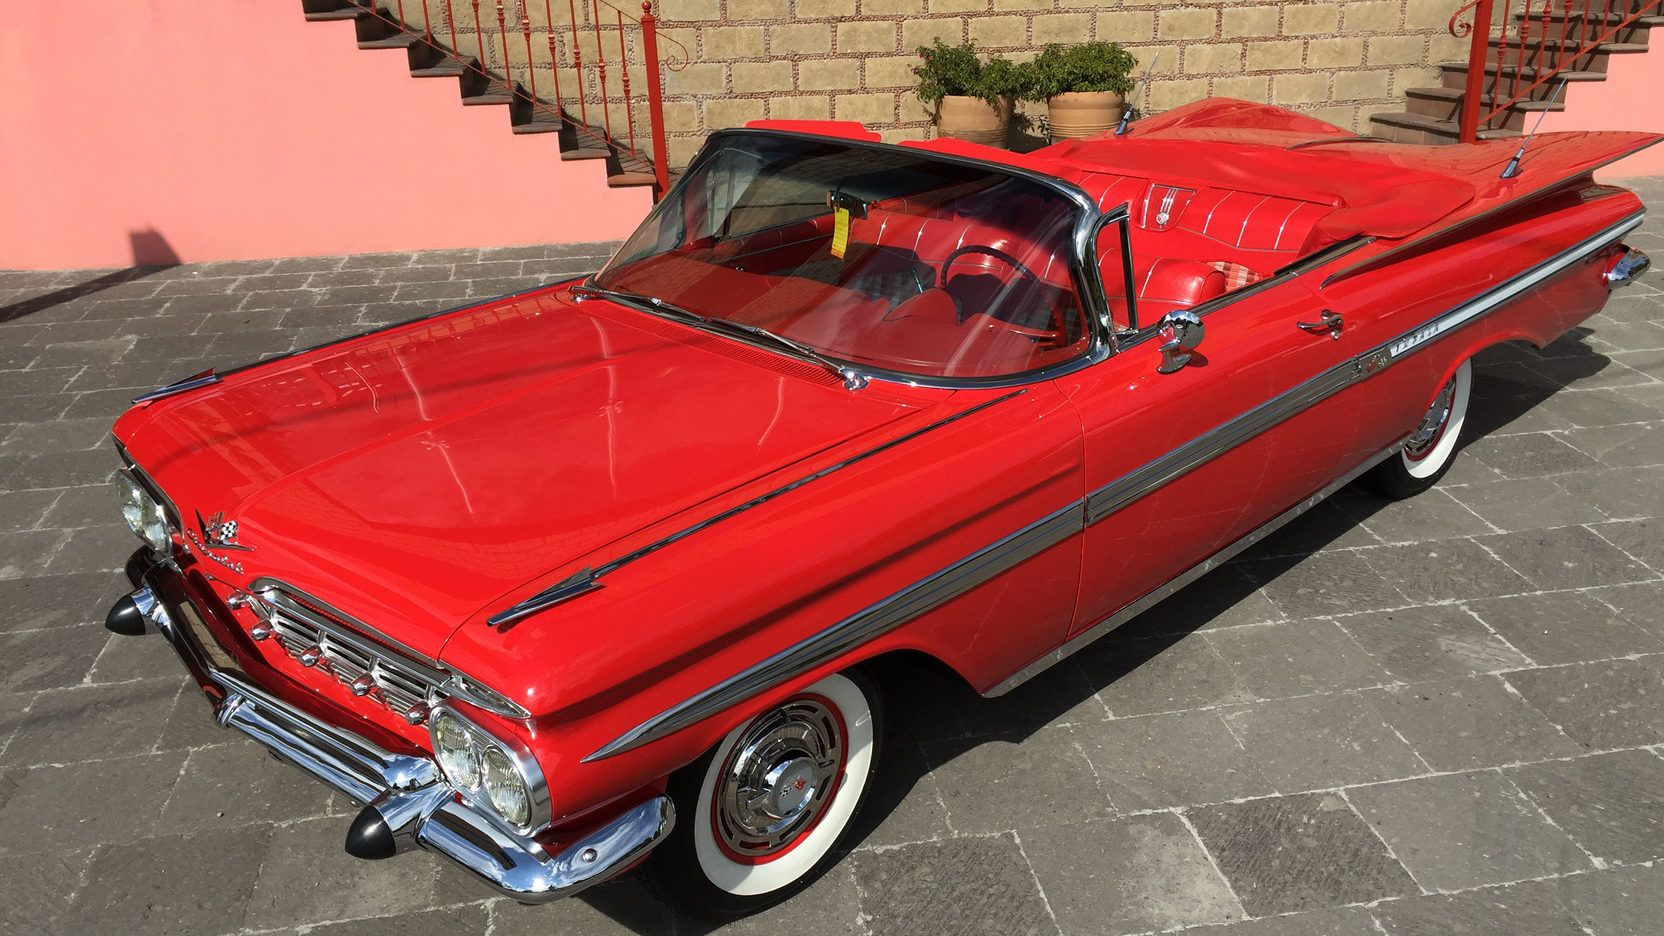 1959 Chevrolet Impala Convertible presented as Lot S151 at Houston ...